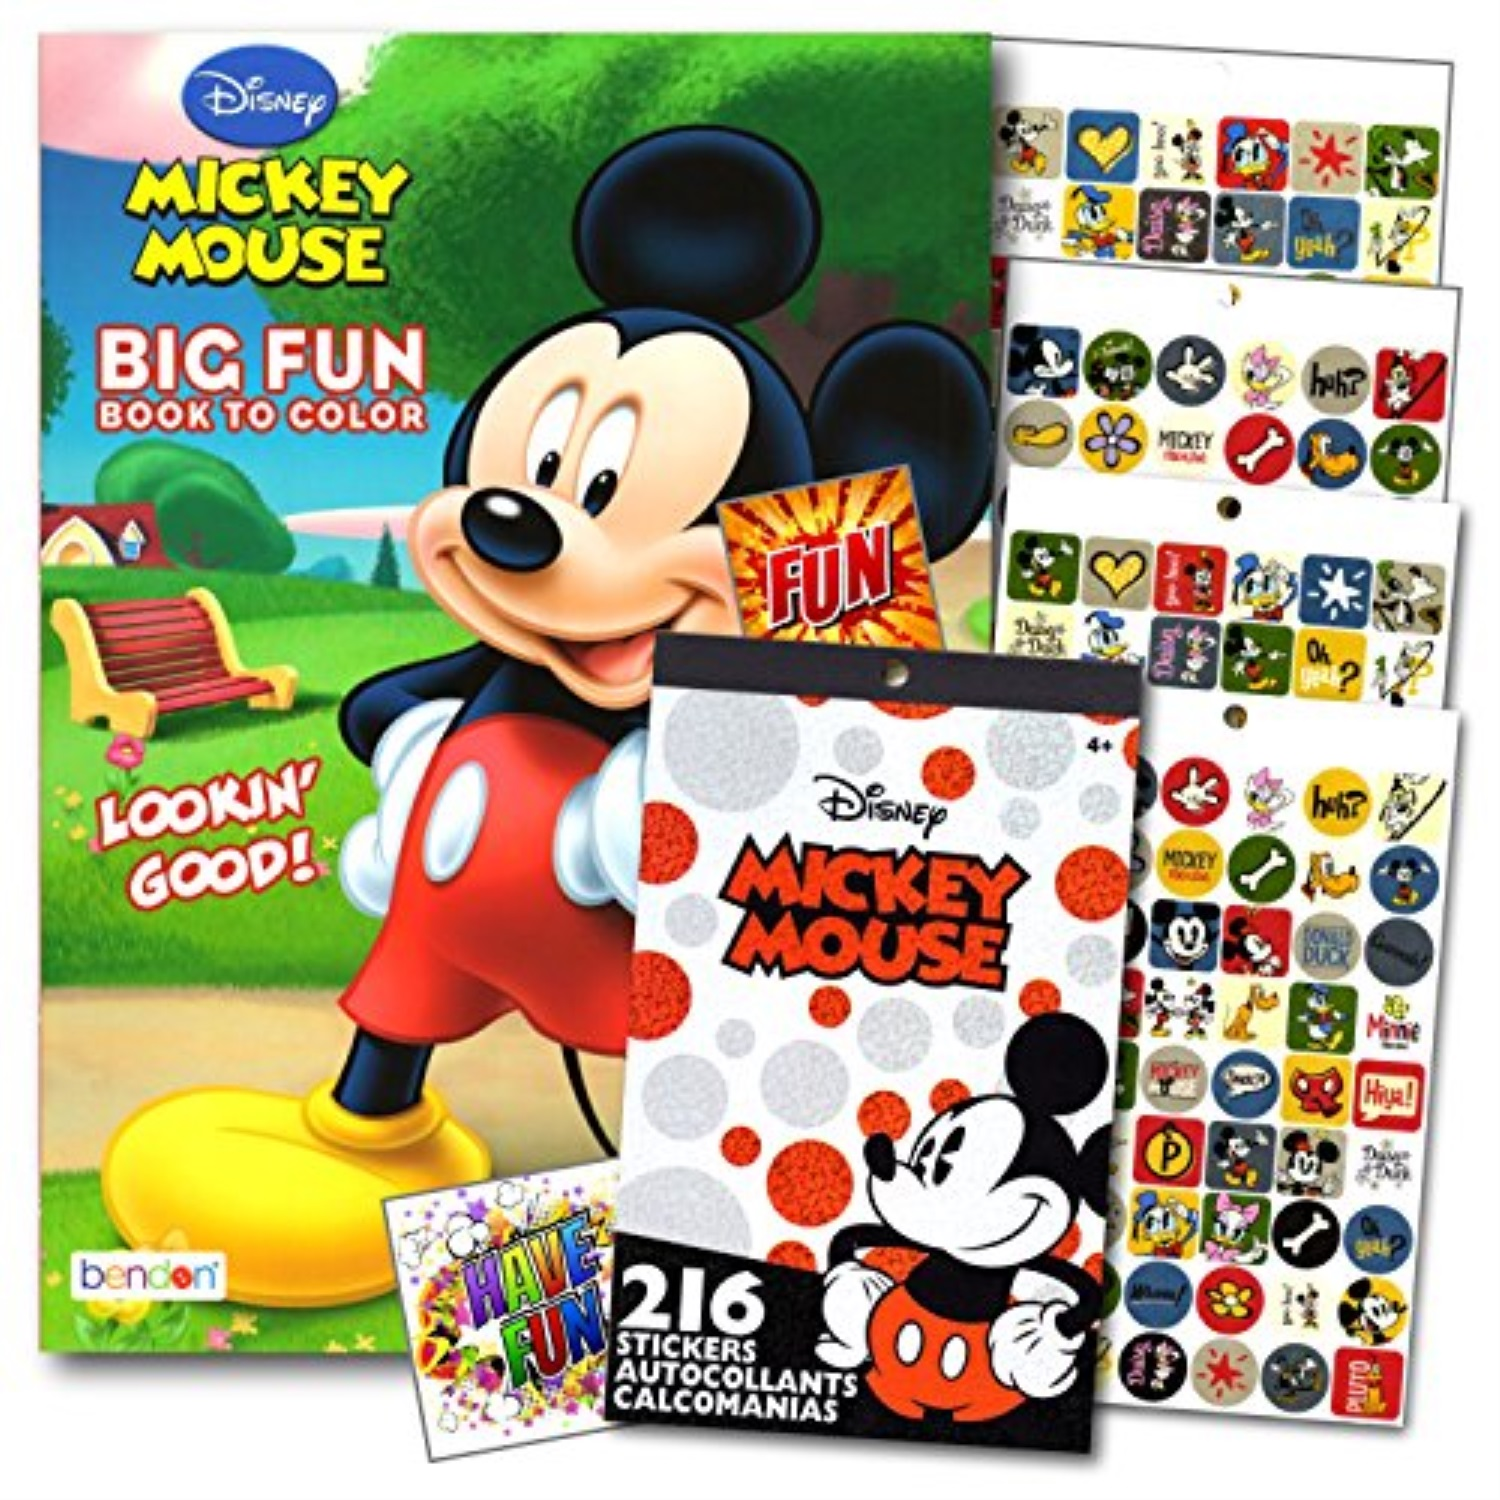 Mickey Mouse Coloring Book With Stickers Set - 96 Pg Mickey Coloring  Activity Book And Mickey Mouse Stickers Bundled With 2 Spec - Walmart.com -  Walmart.com